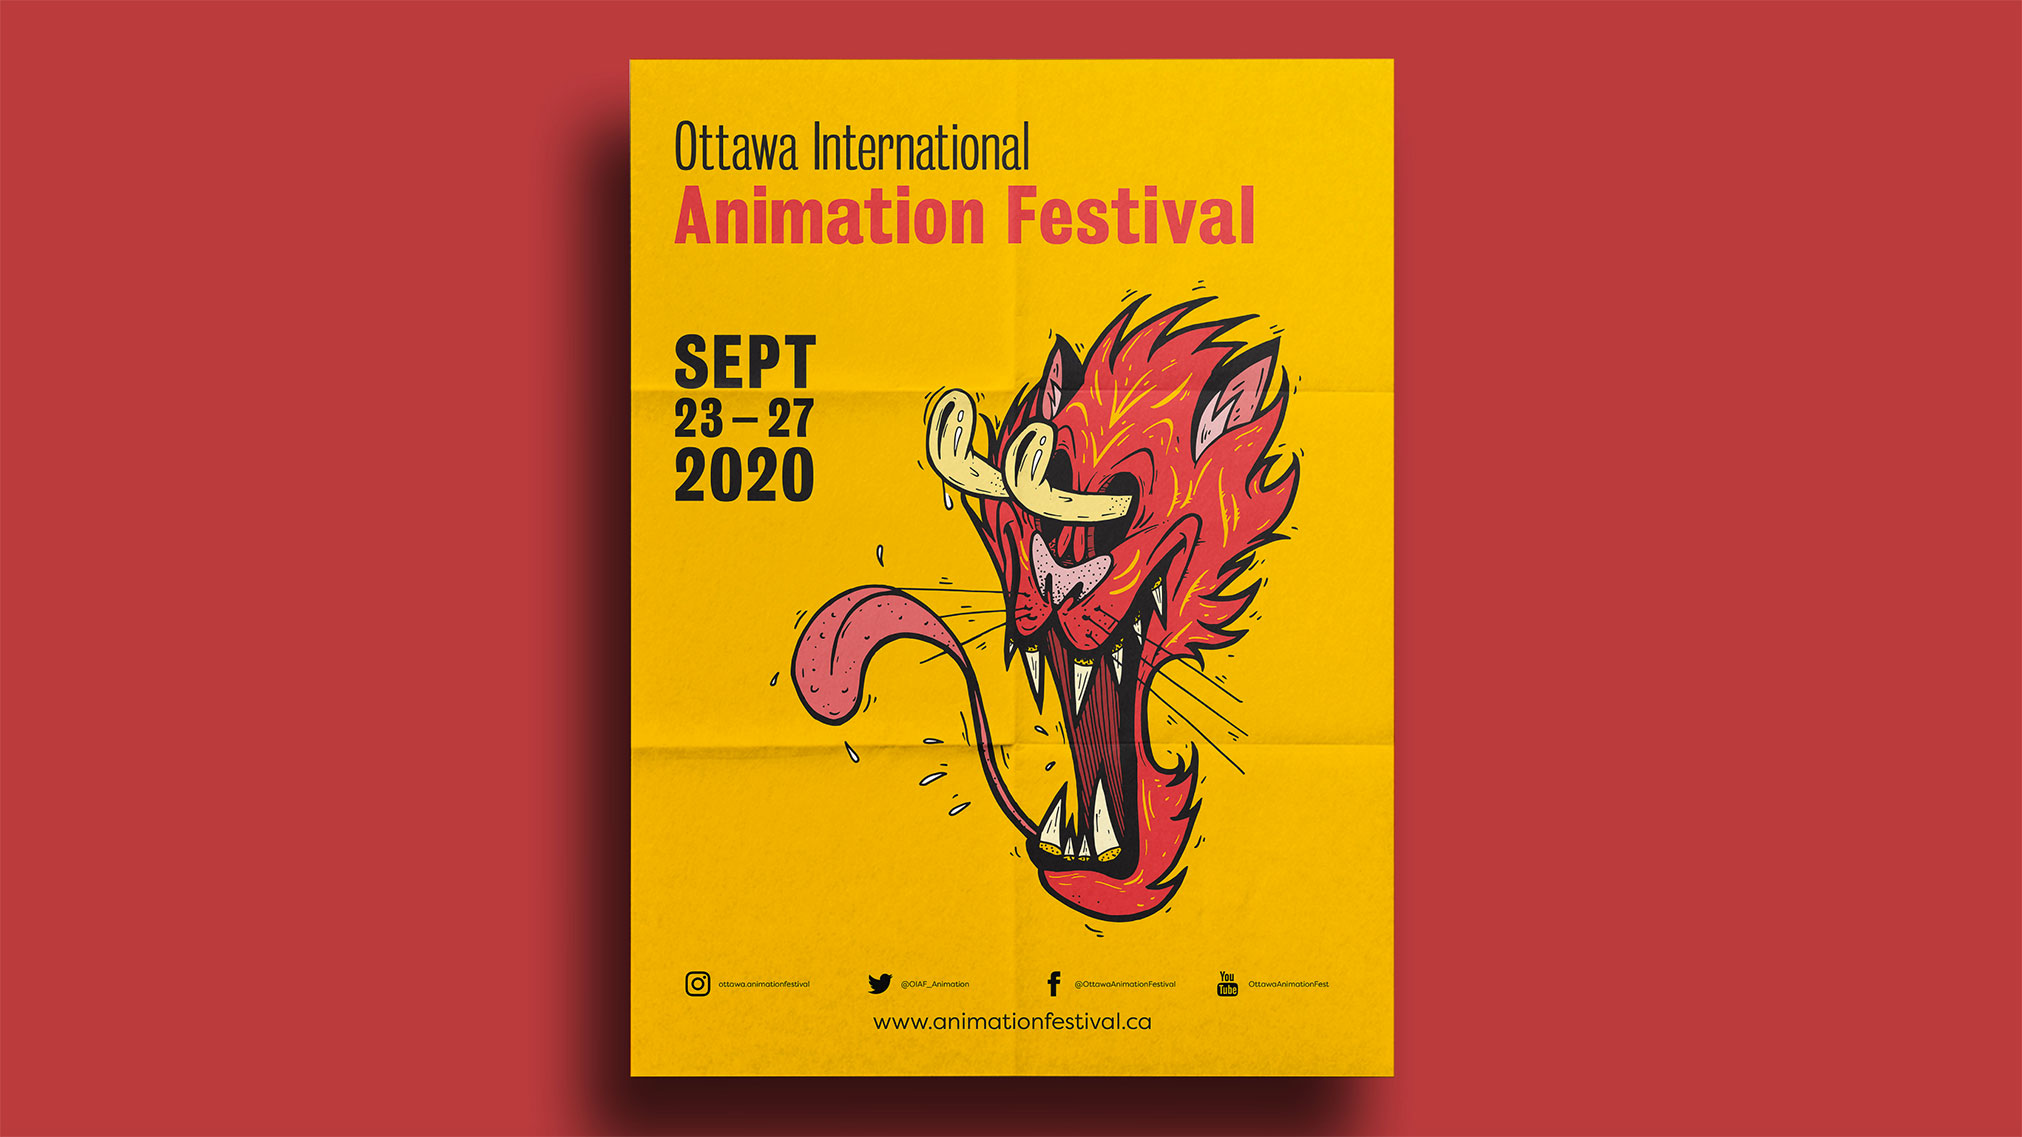 In this project I had to create a festival guide, along with a poster on the inside. The illustration was inspired by cartoons like Ren & Stimpy, in this case I went with a tiger character.